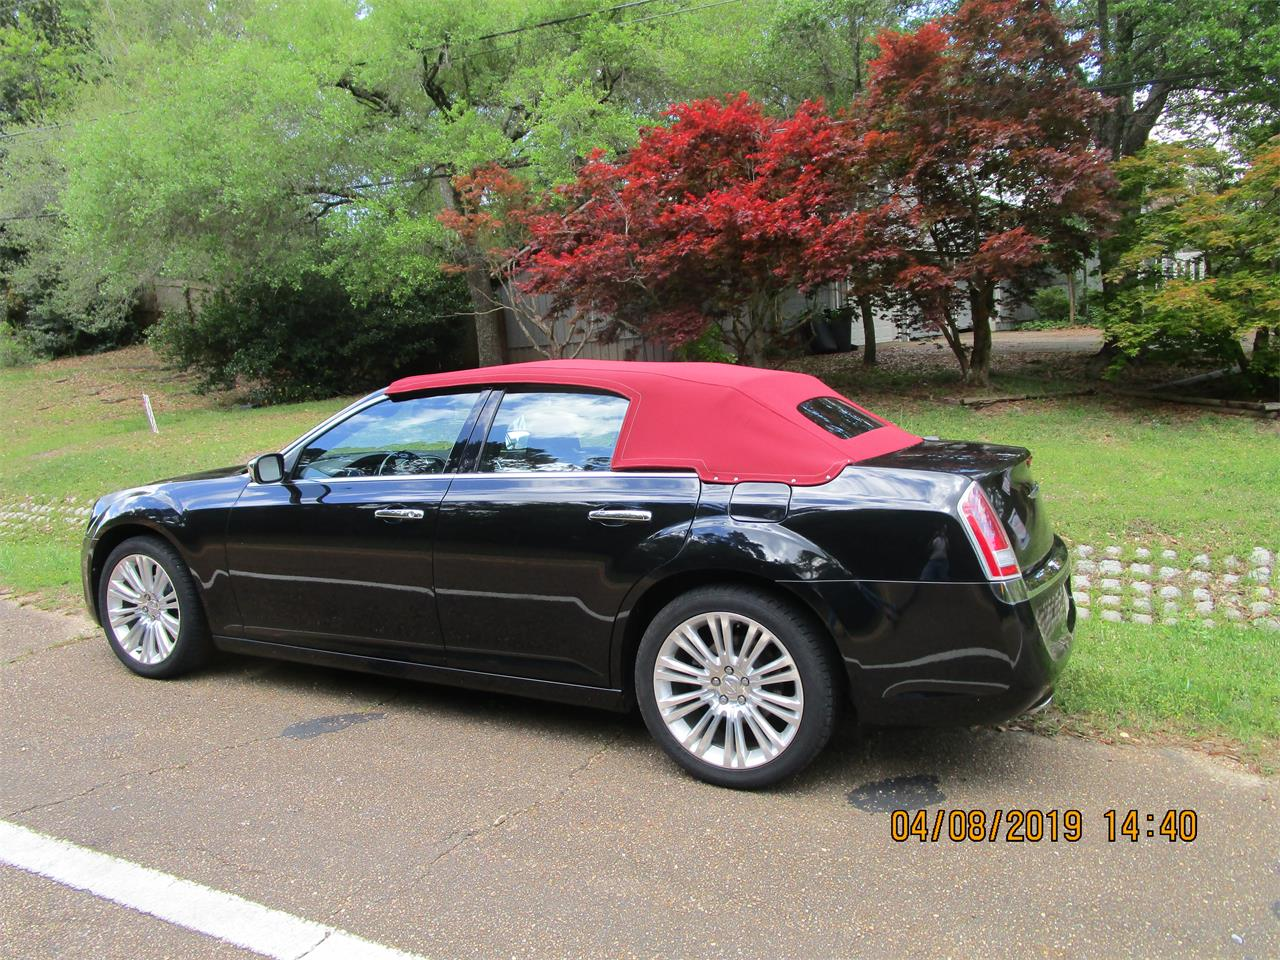 2011 Chrysler 300 for sale in Summit, MS – photo 11